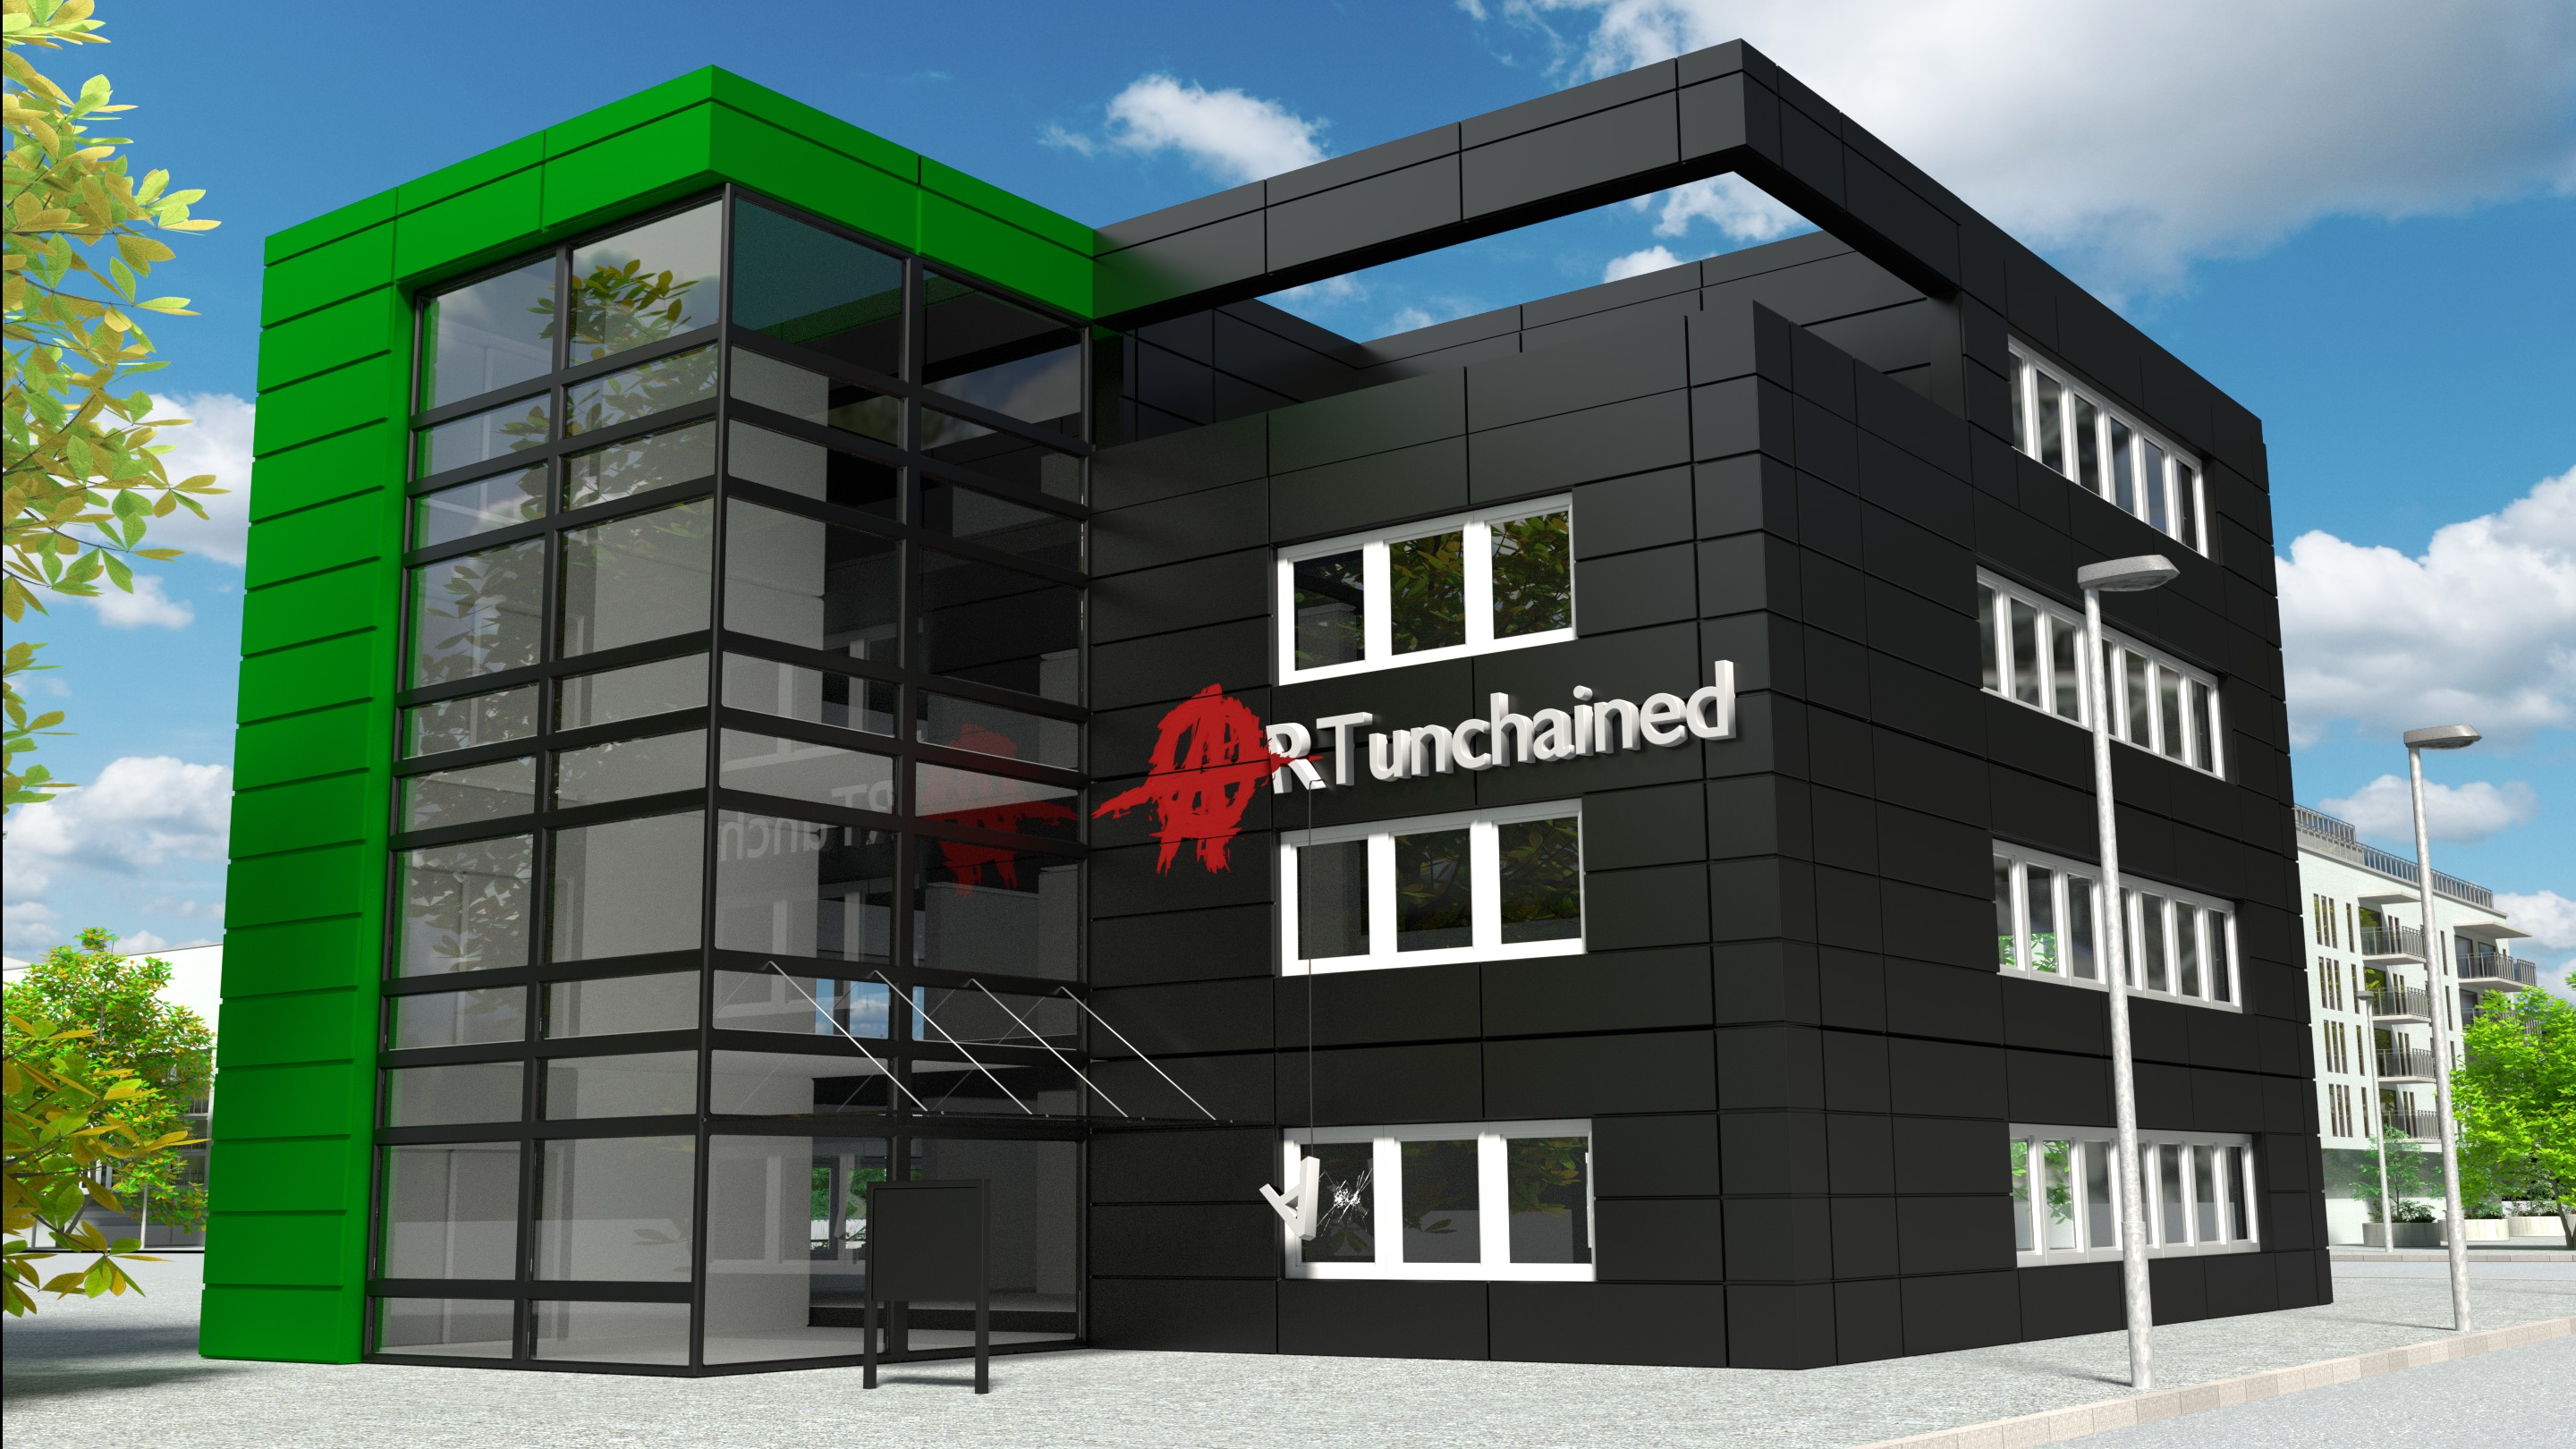 3D Rendering Artunchained Archviz & Webdesign Central